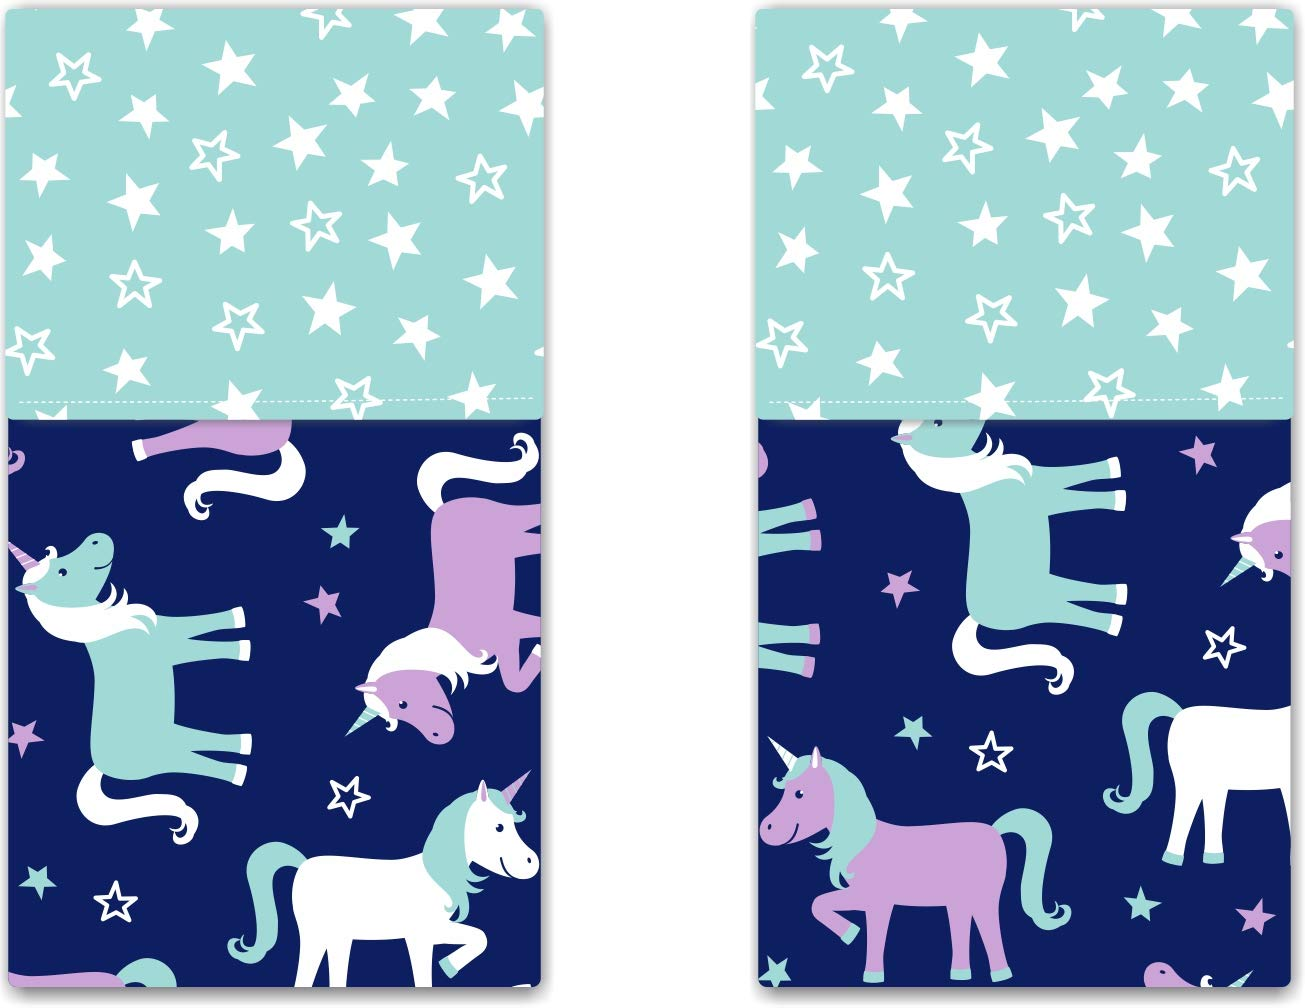 Funkins Cloth Placemats for Kids | School Lunches | Reusable, Eco-Friendly | 2-Ply, Durable | Set of 2, 15''x13'' Cotton Placemats | Magical Unicorns